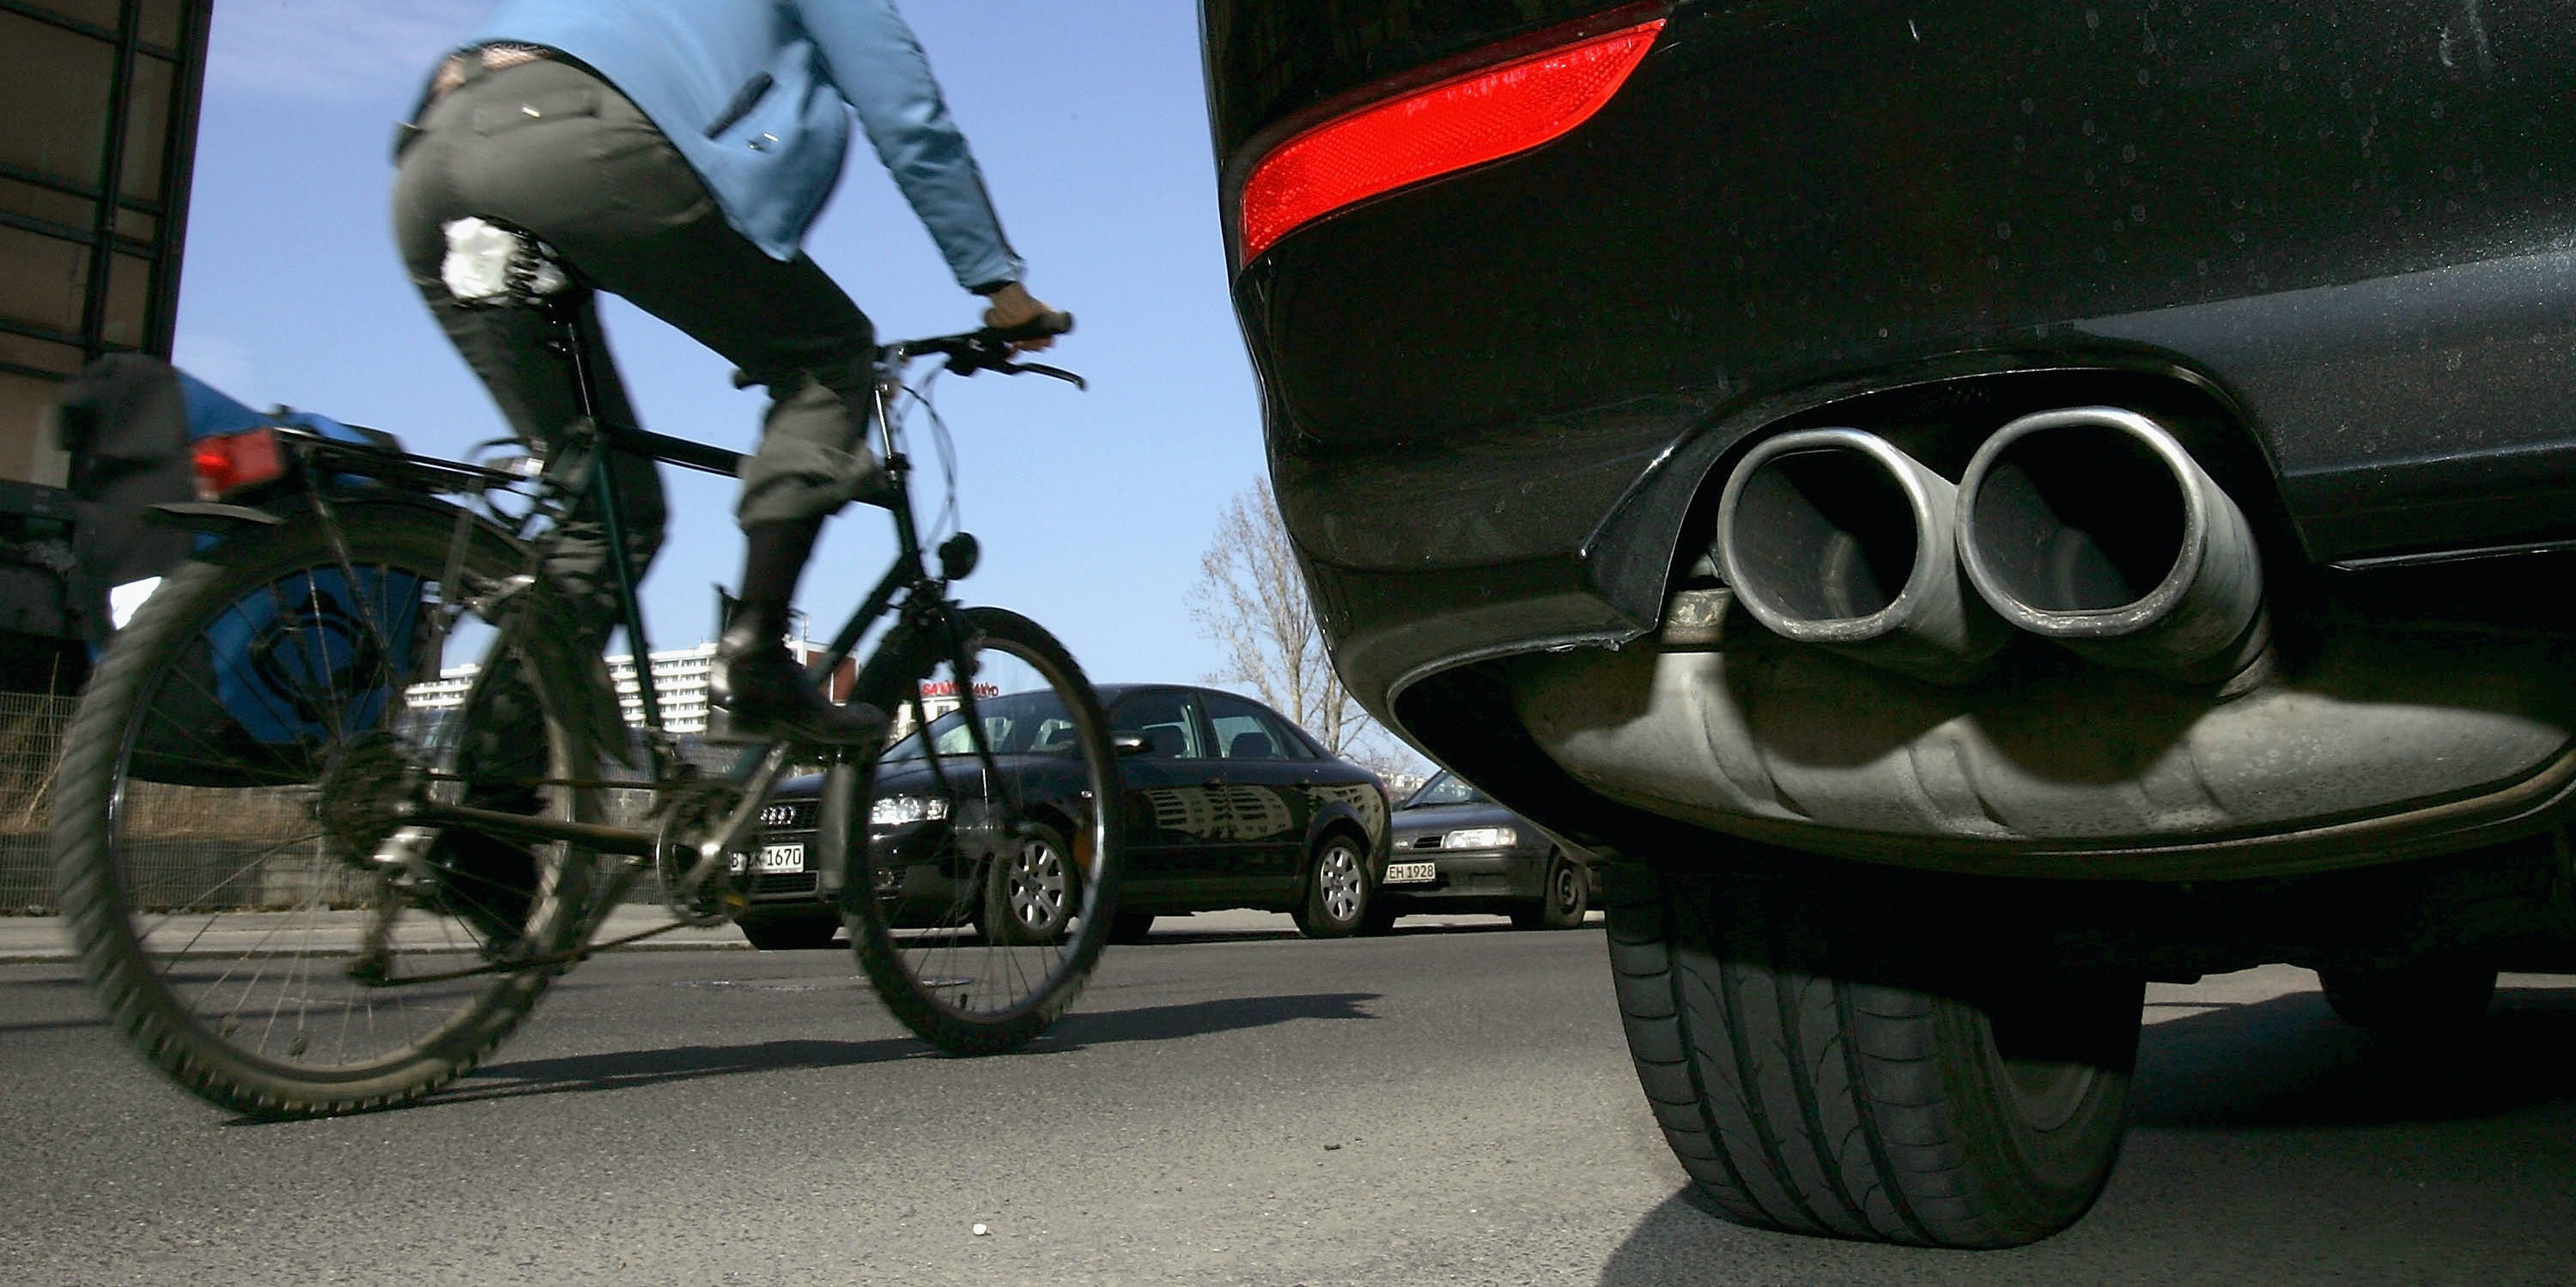 BERLIN, GERMANY - MARCH 29: A cyclist drives past a parked car and its exhaust pipe on March 29, 2005 in Berlin, Germany. Many German cities are close to violating EU-regulated emission limits of so-called fine particle dust, which mostly comes from diesel engines and worn tires. The German city of Munich recently exceeded its limit, and other cities, including Berlin and Frankfurt, are likely to do so soon. While other countries in Europe, such as Italy and France, have been dealing with the growing problem, Germany has lagged behind. An estimated tens of thousand of Germans die every year because of the medical consequences of breathing in fine particle dust. Several German automakers recently announced they will introduce particle filters for their diesel cars sooner than originally planned.    (Photo by Sean Gallup/Getty Images)